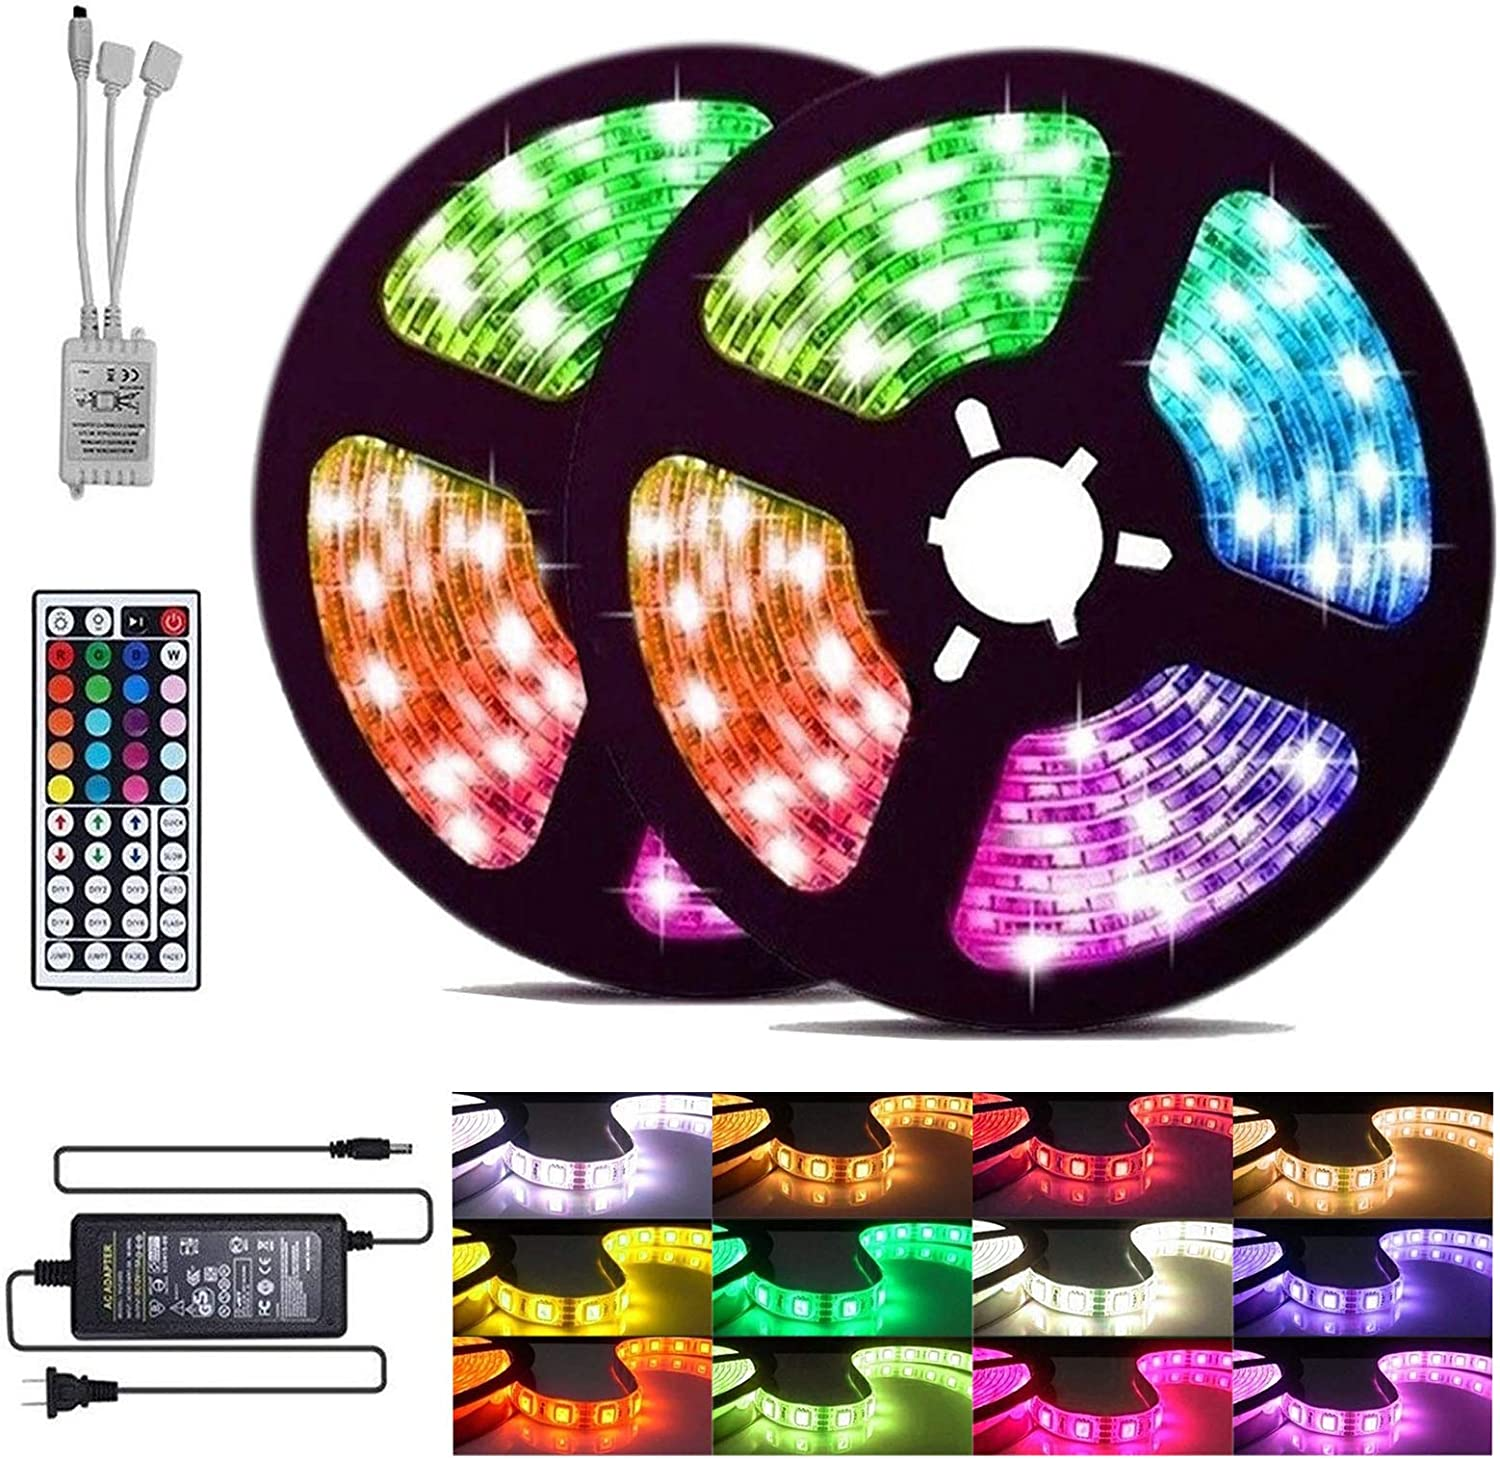 Free shipping anywhere in the nation Las Vegas Mall Abbaoww 32.8ft LED Strip Lights with Changing Led Color